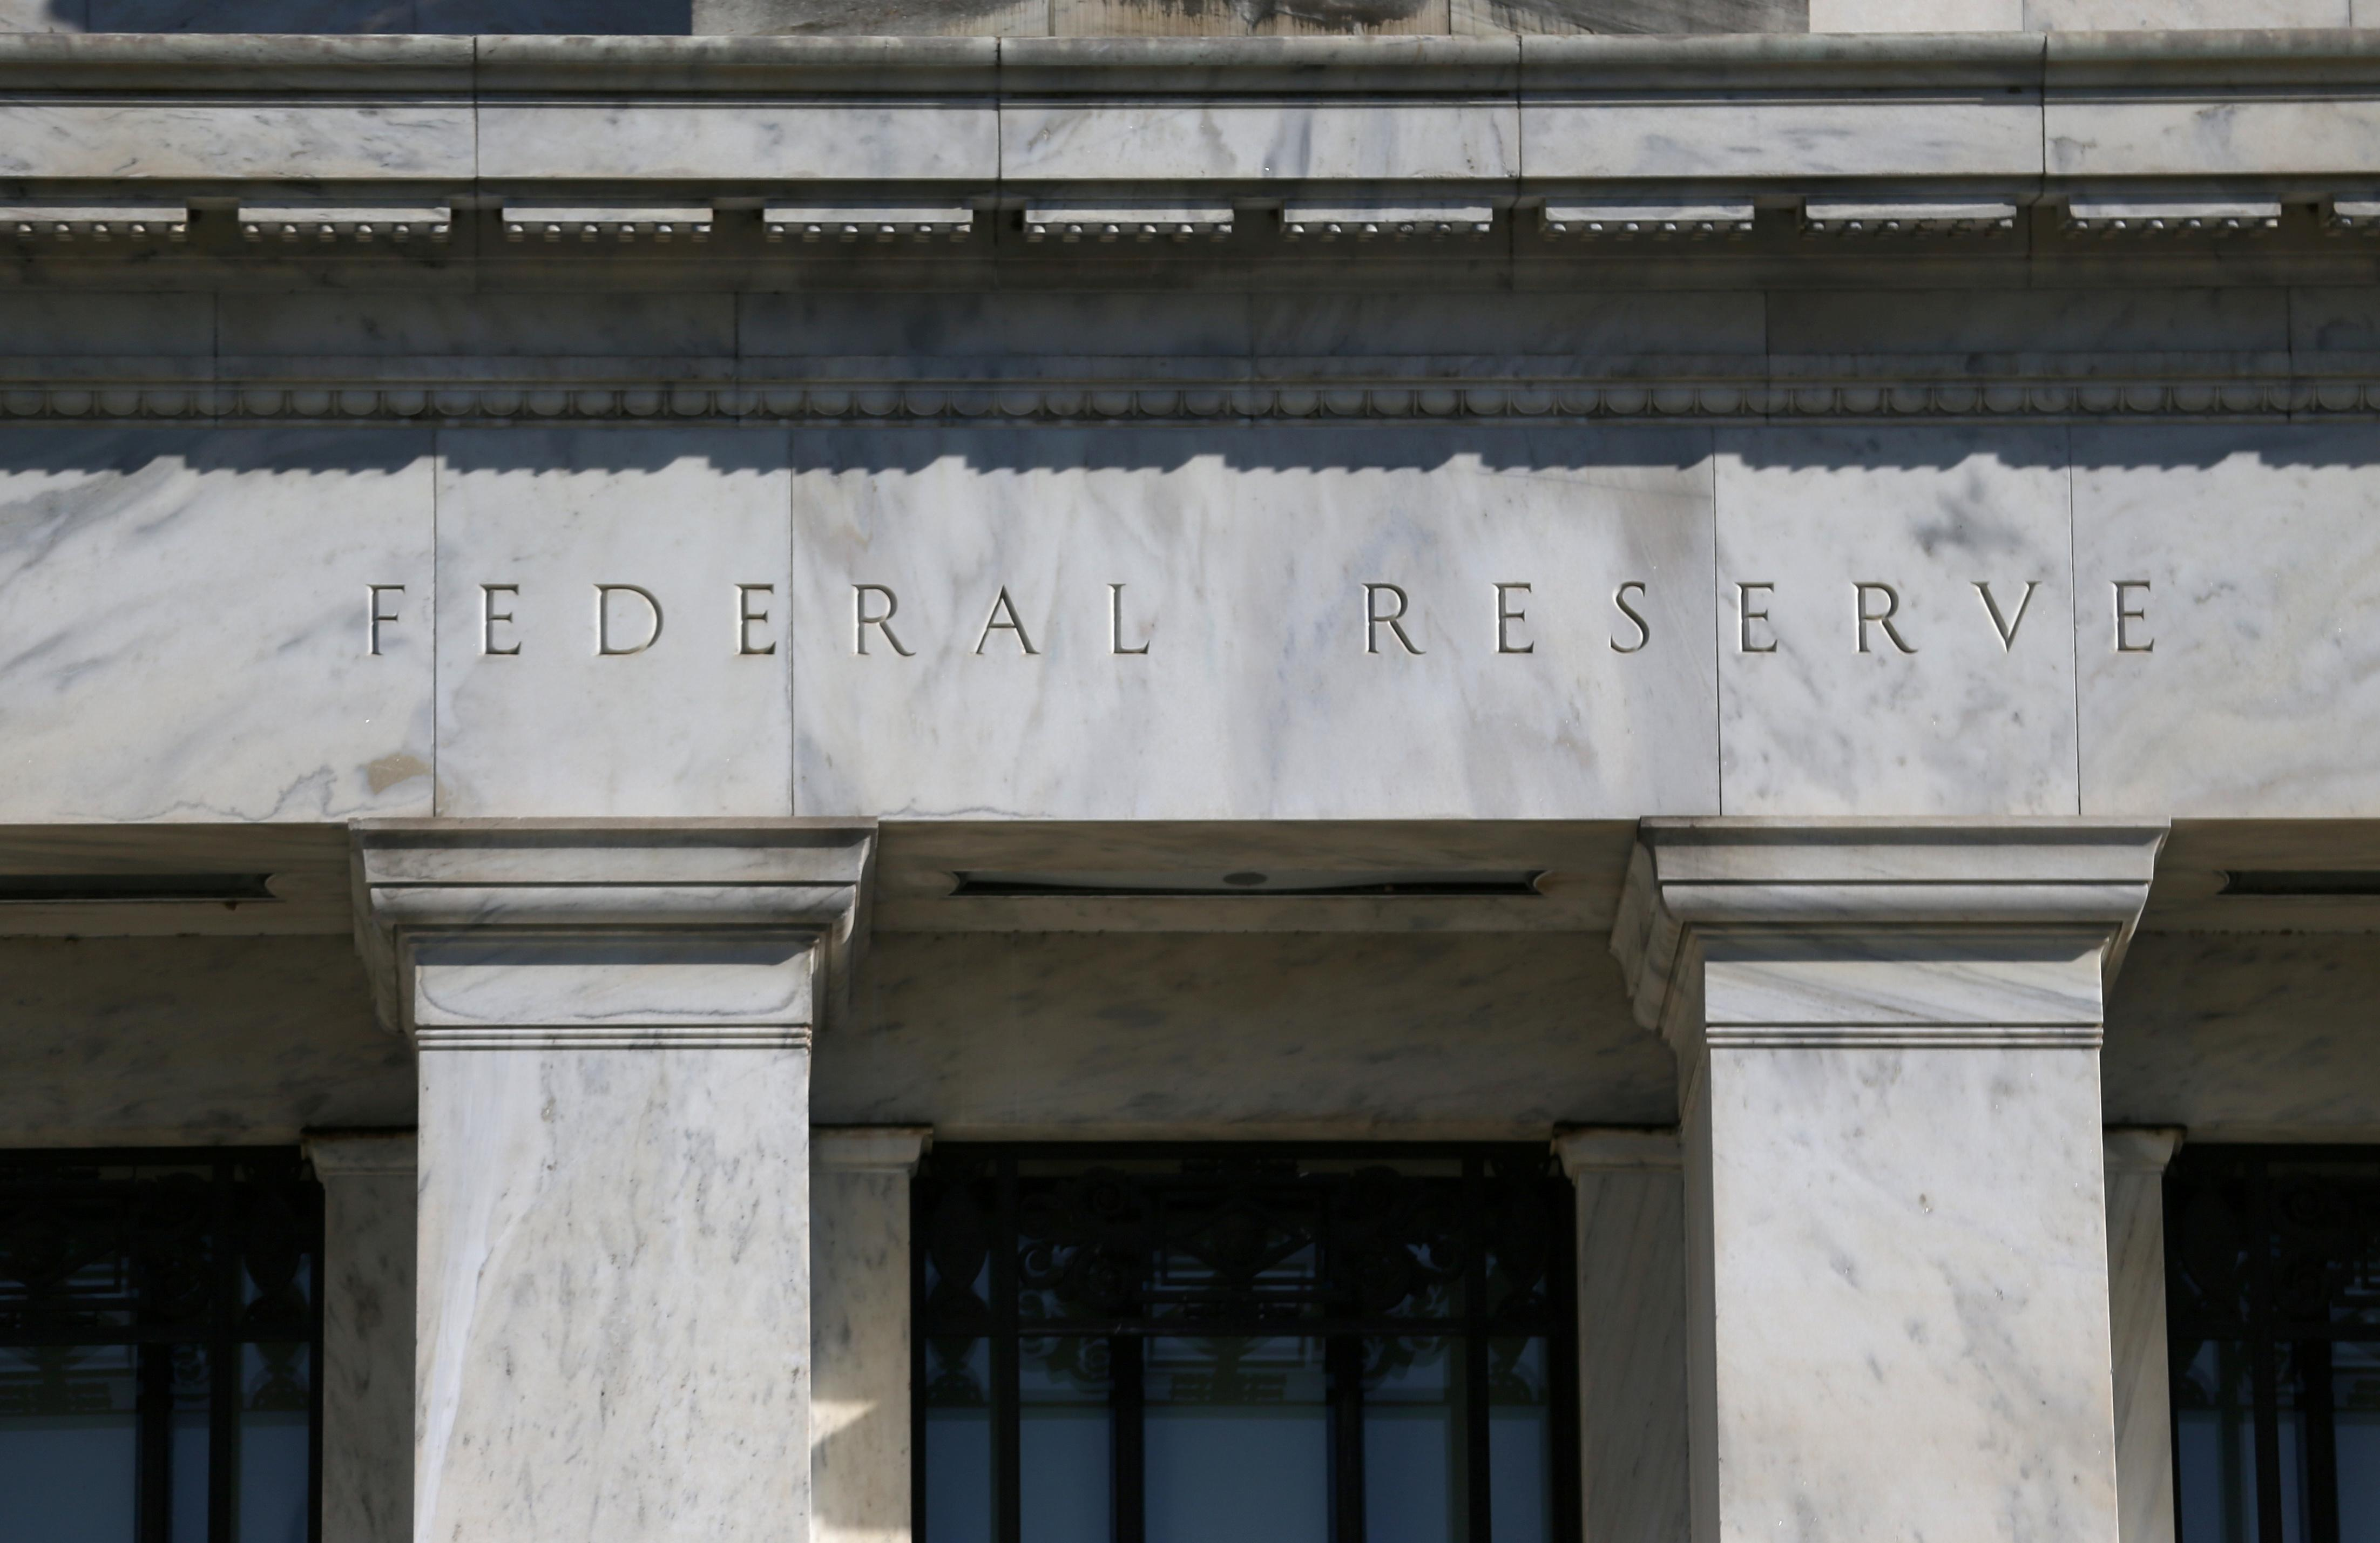 Federal Reserve Board building on Constitution Avenue is pictured in Washington, U.S., March 19, 2019. Leah Millis